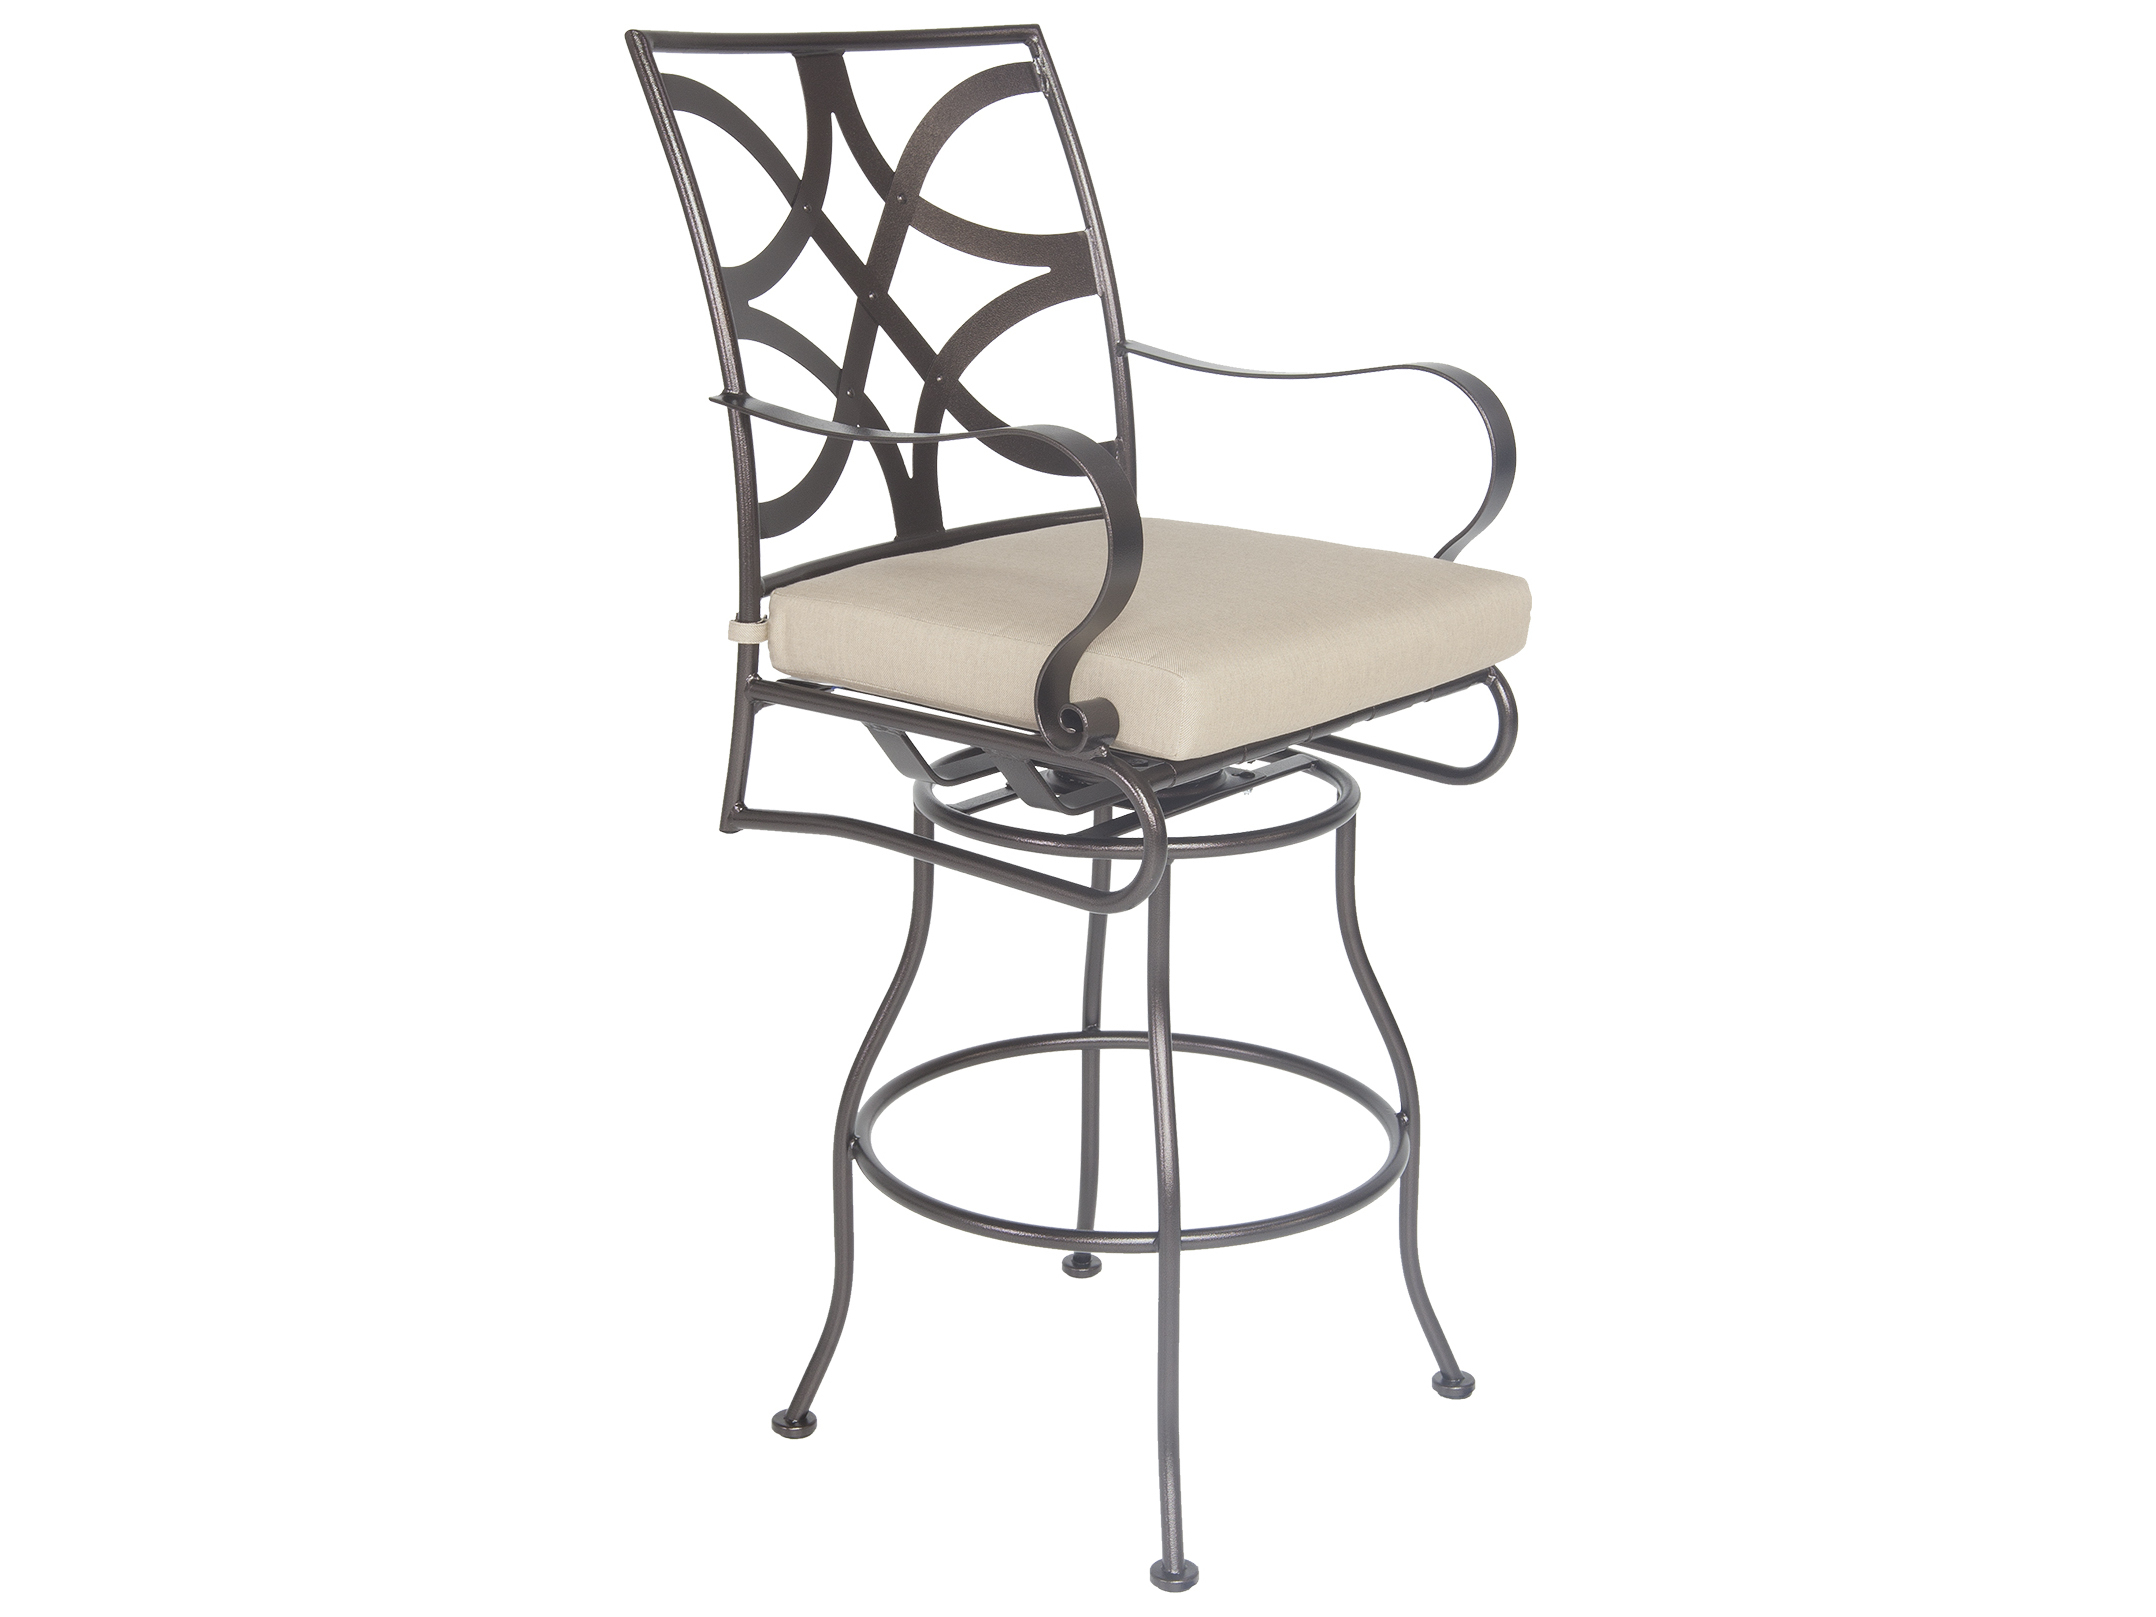 Ow Lee Marquette Wrought Iron Swivel Bar Stool 2053 Sbs